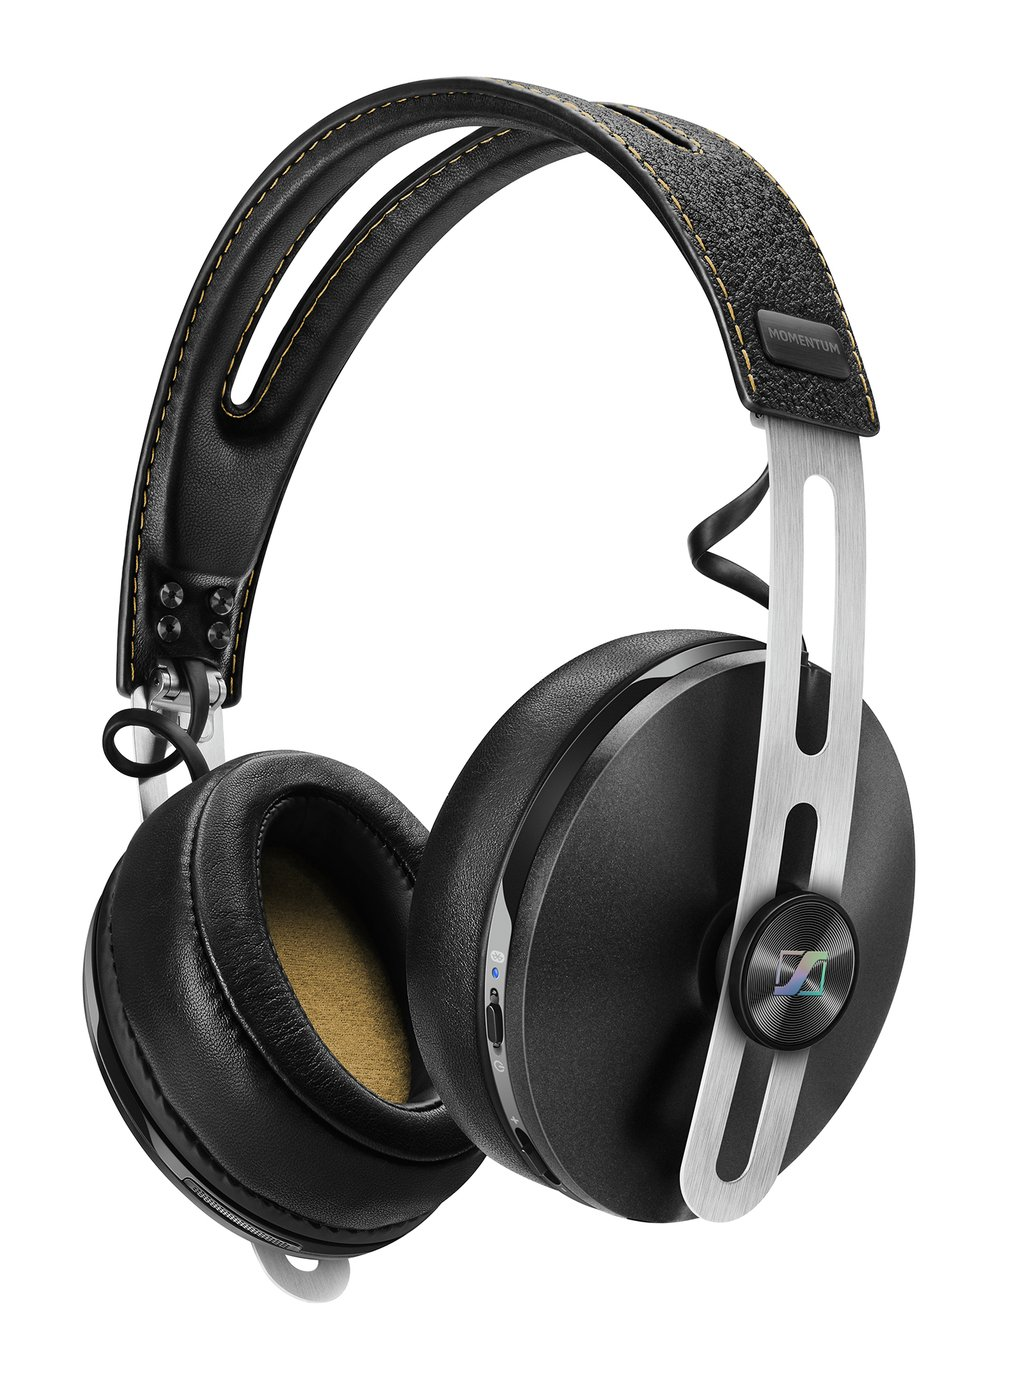 Sennheiser Momentum 2.0 Around Ear Wireless Headphones Black